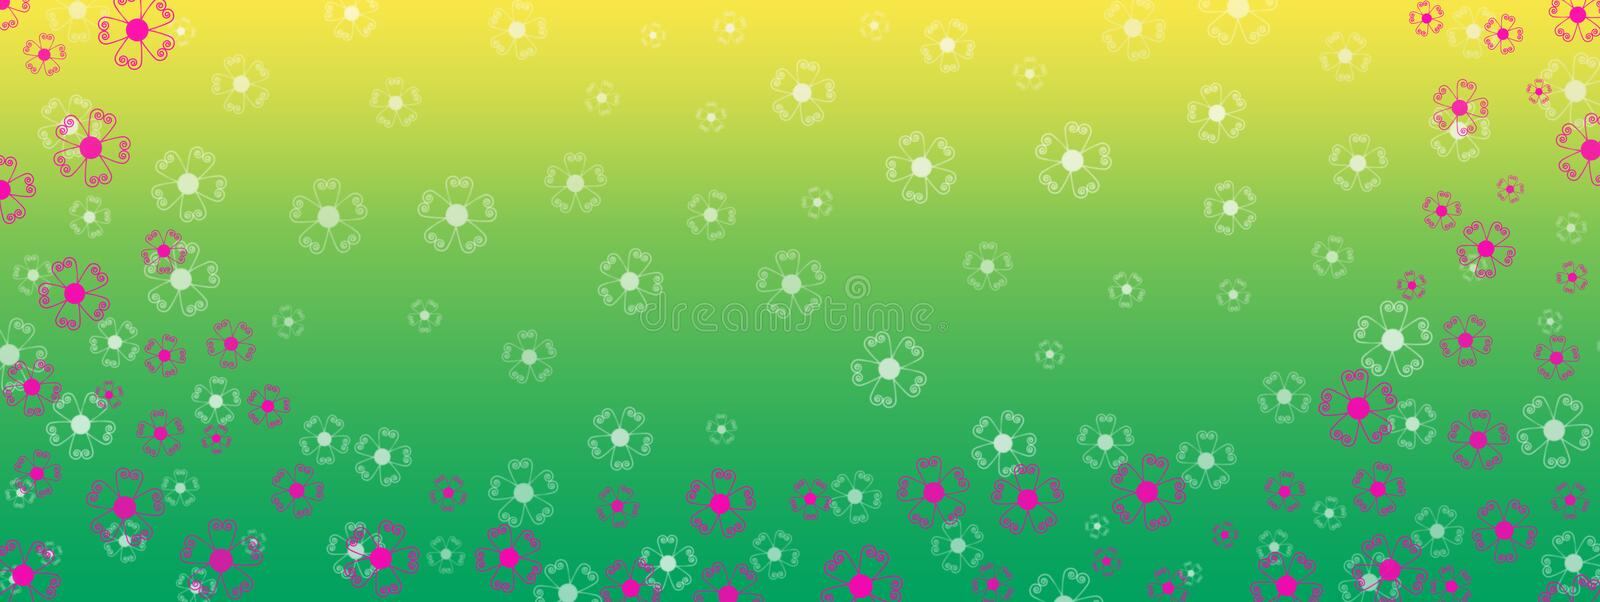 Pink Flowers Border in Green and Yellow Gradient Banner Background. Illustration of pink flowers border in green and yellow gradient background with white stock image